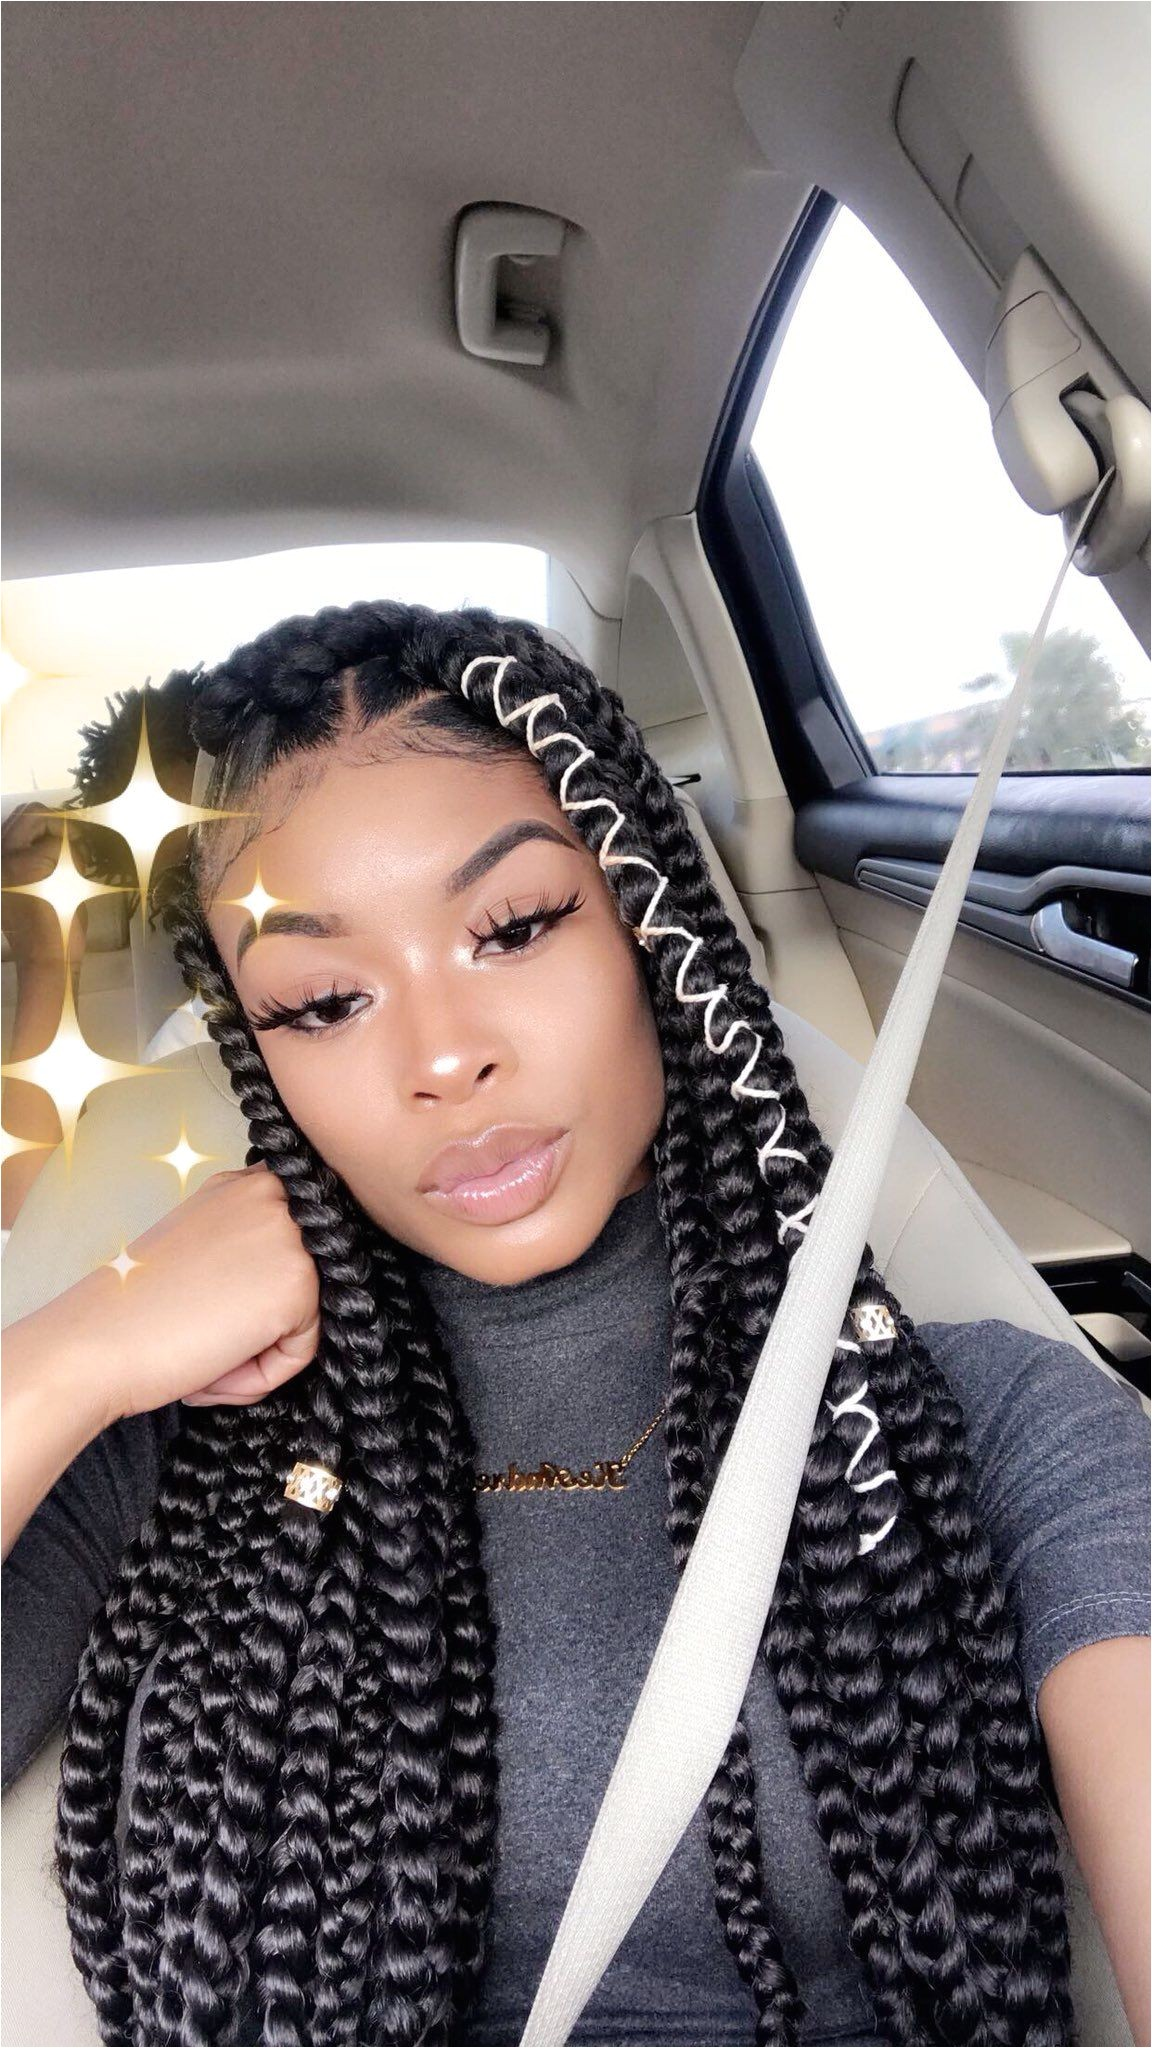 Find this Pin and more on Hairstyles Braids Gang by aimeeThrone